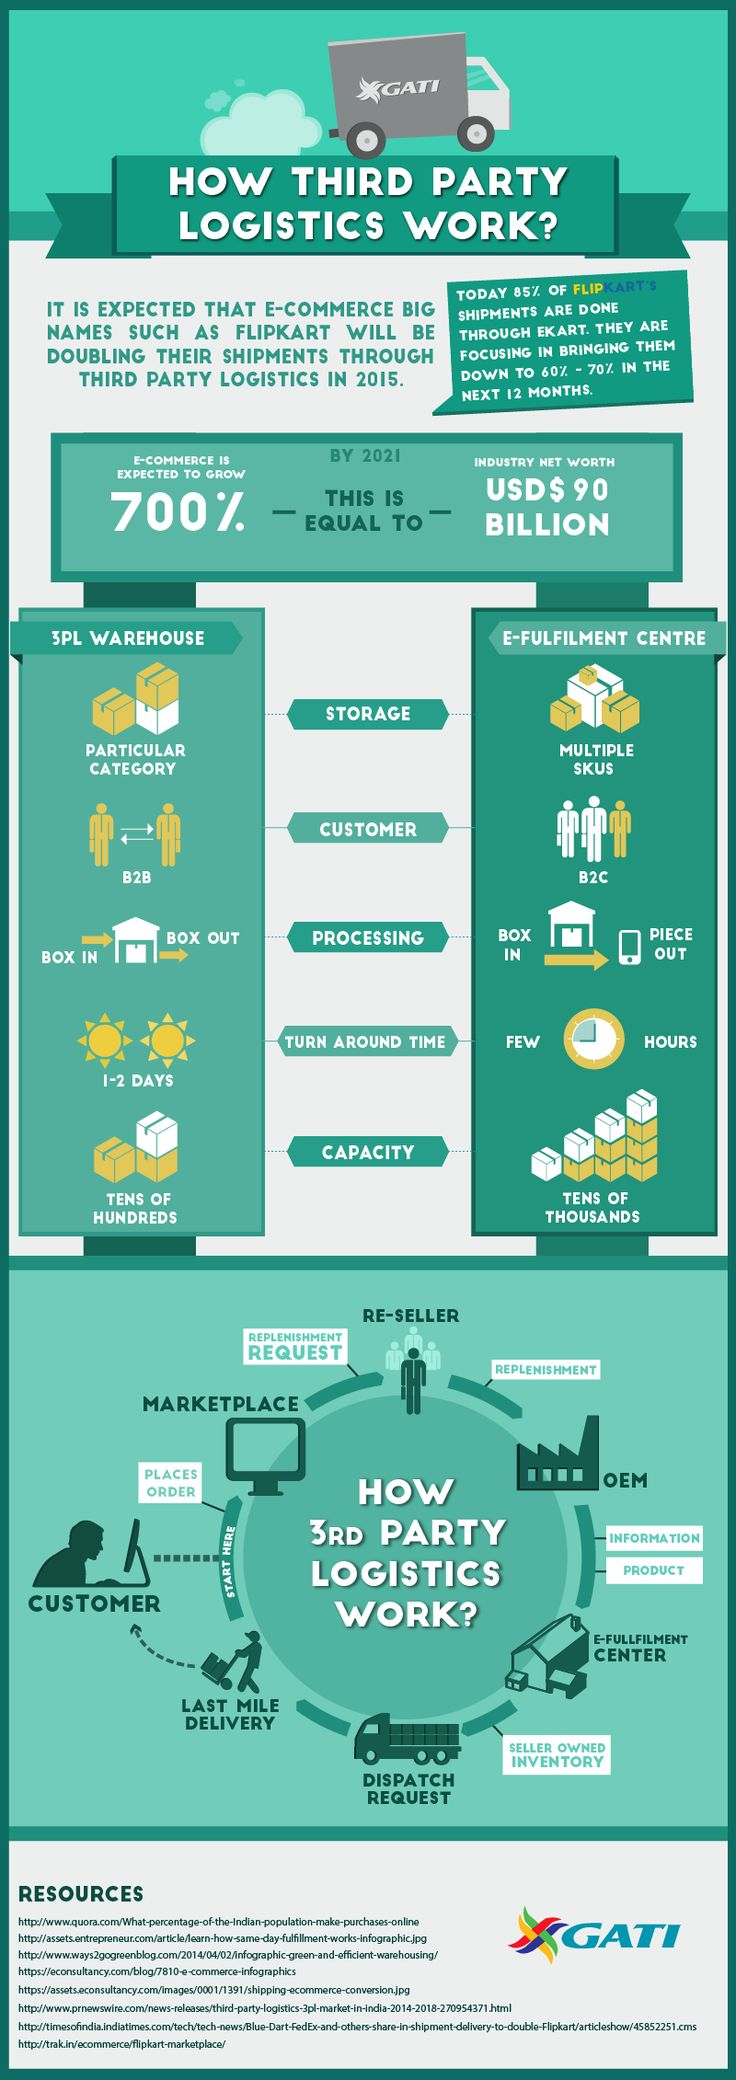 How third party logistics work? #infographic #logistics #howto